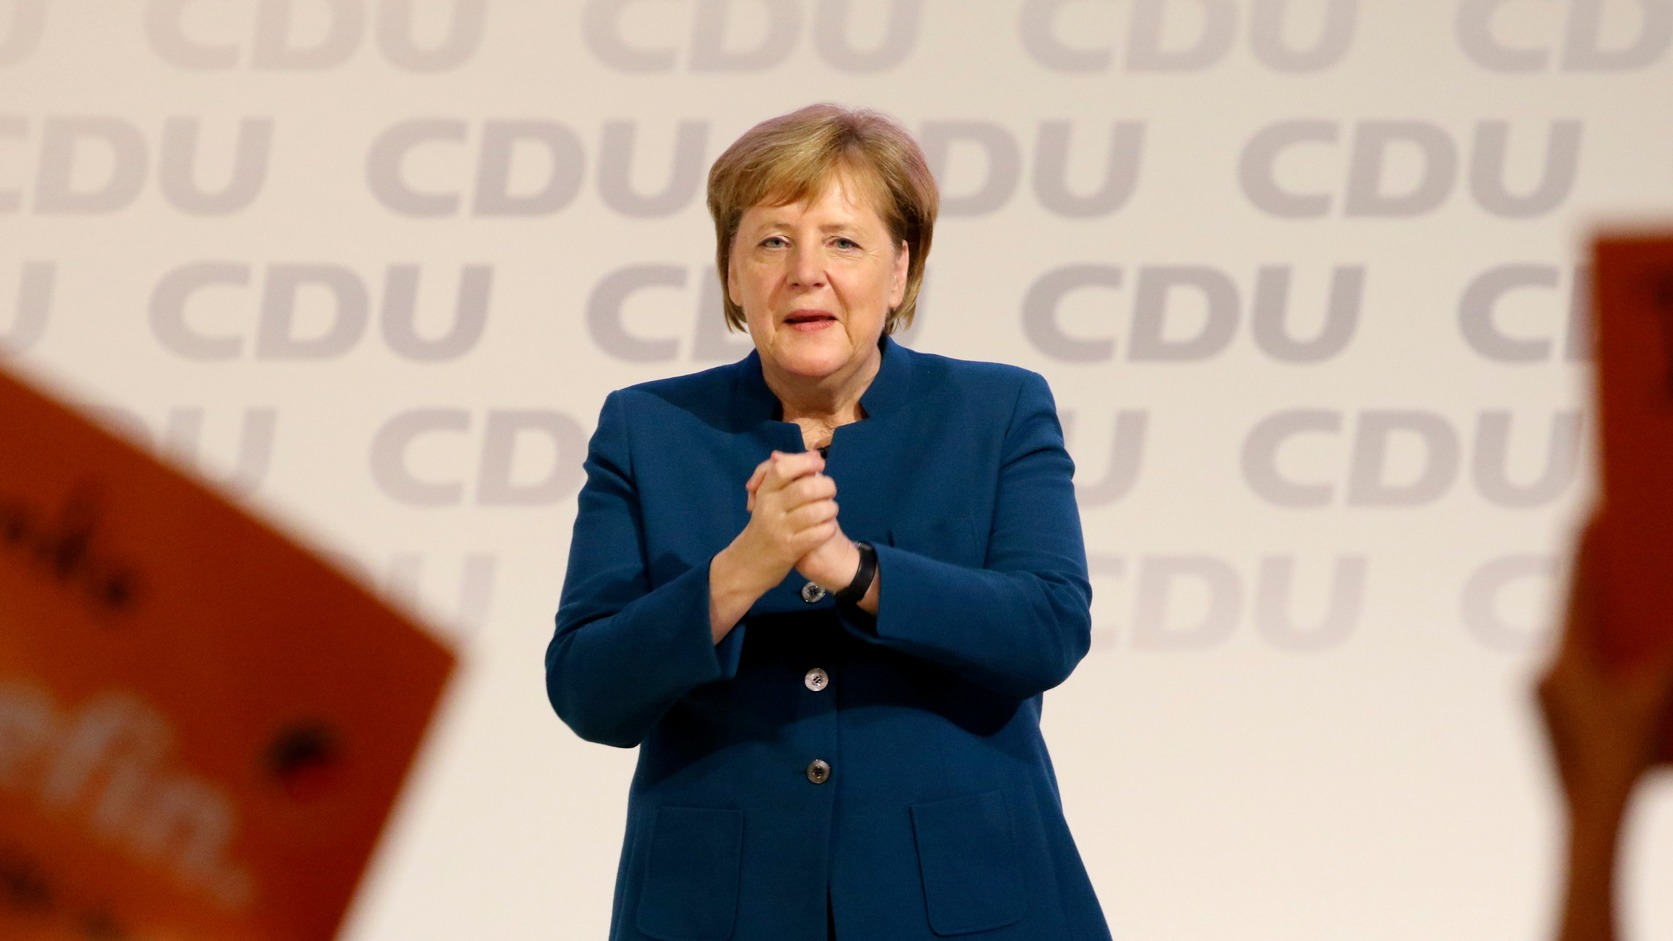 epa07214433 German Chancellor Angela Merkel gestures at the end of her speech during the 31st Party Congress of the Christian Democratic Union (CDU) in Hamburg, Germany, 07 December 2018. At the party congress, a new party leader is to be elected. Associated with the new party leader is the debate over the fundamental political orientation of the CDU after Chancellor Merkel will no longer hold this office.  EPA/FOCKE STRANGMANN